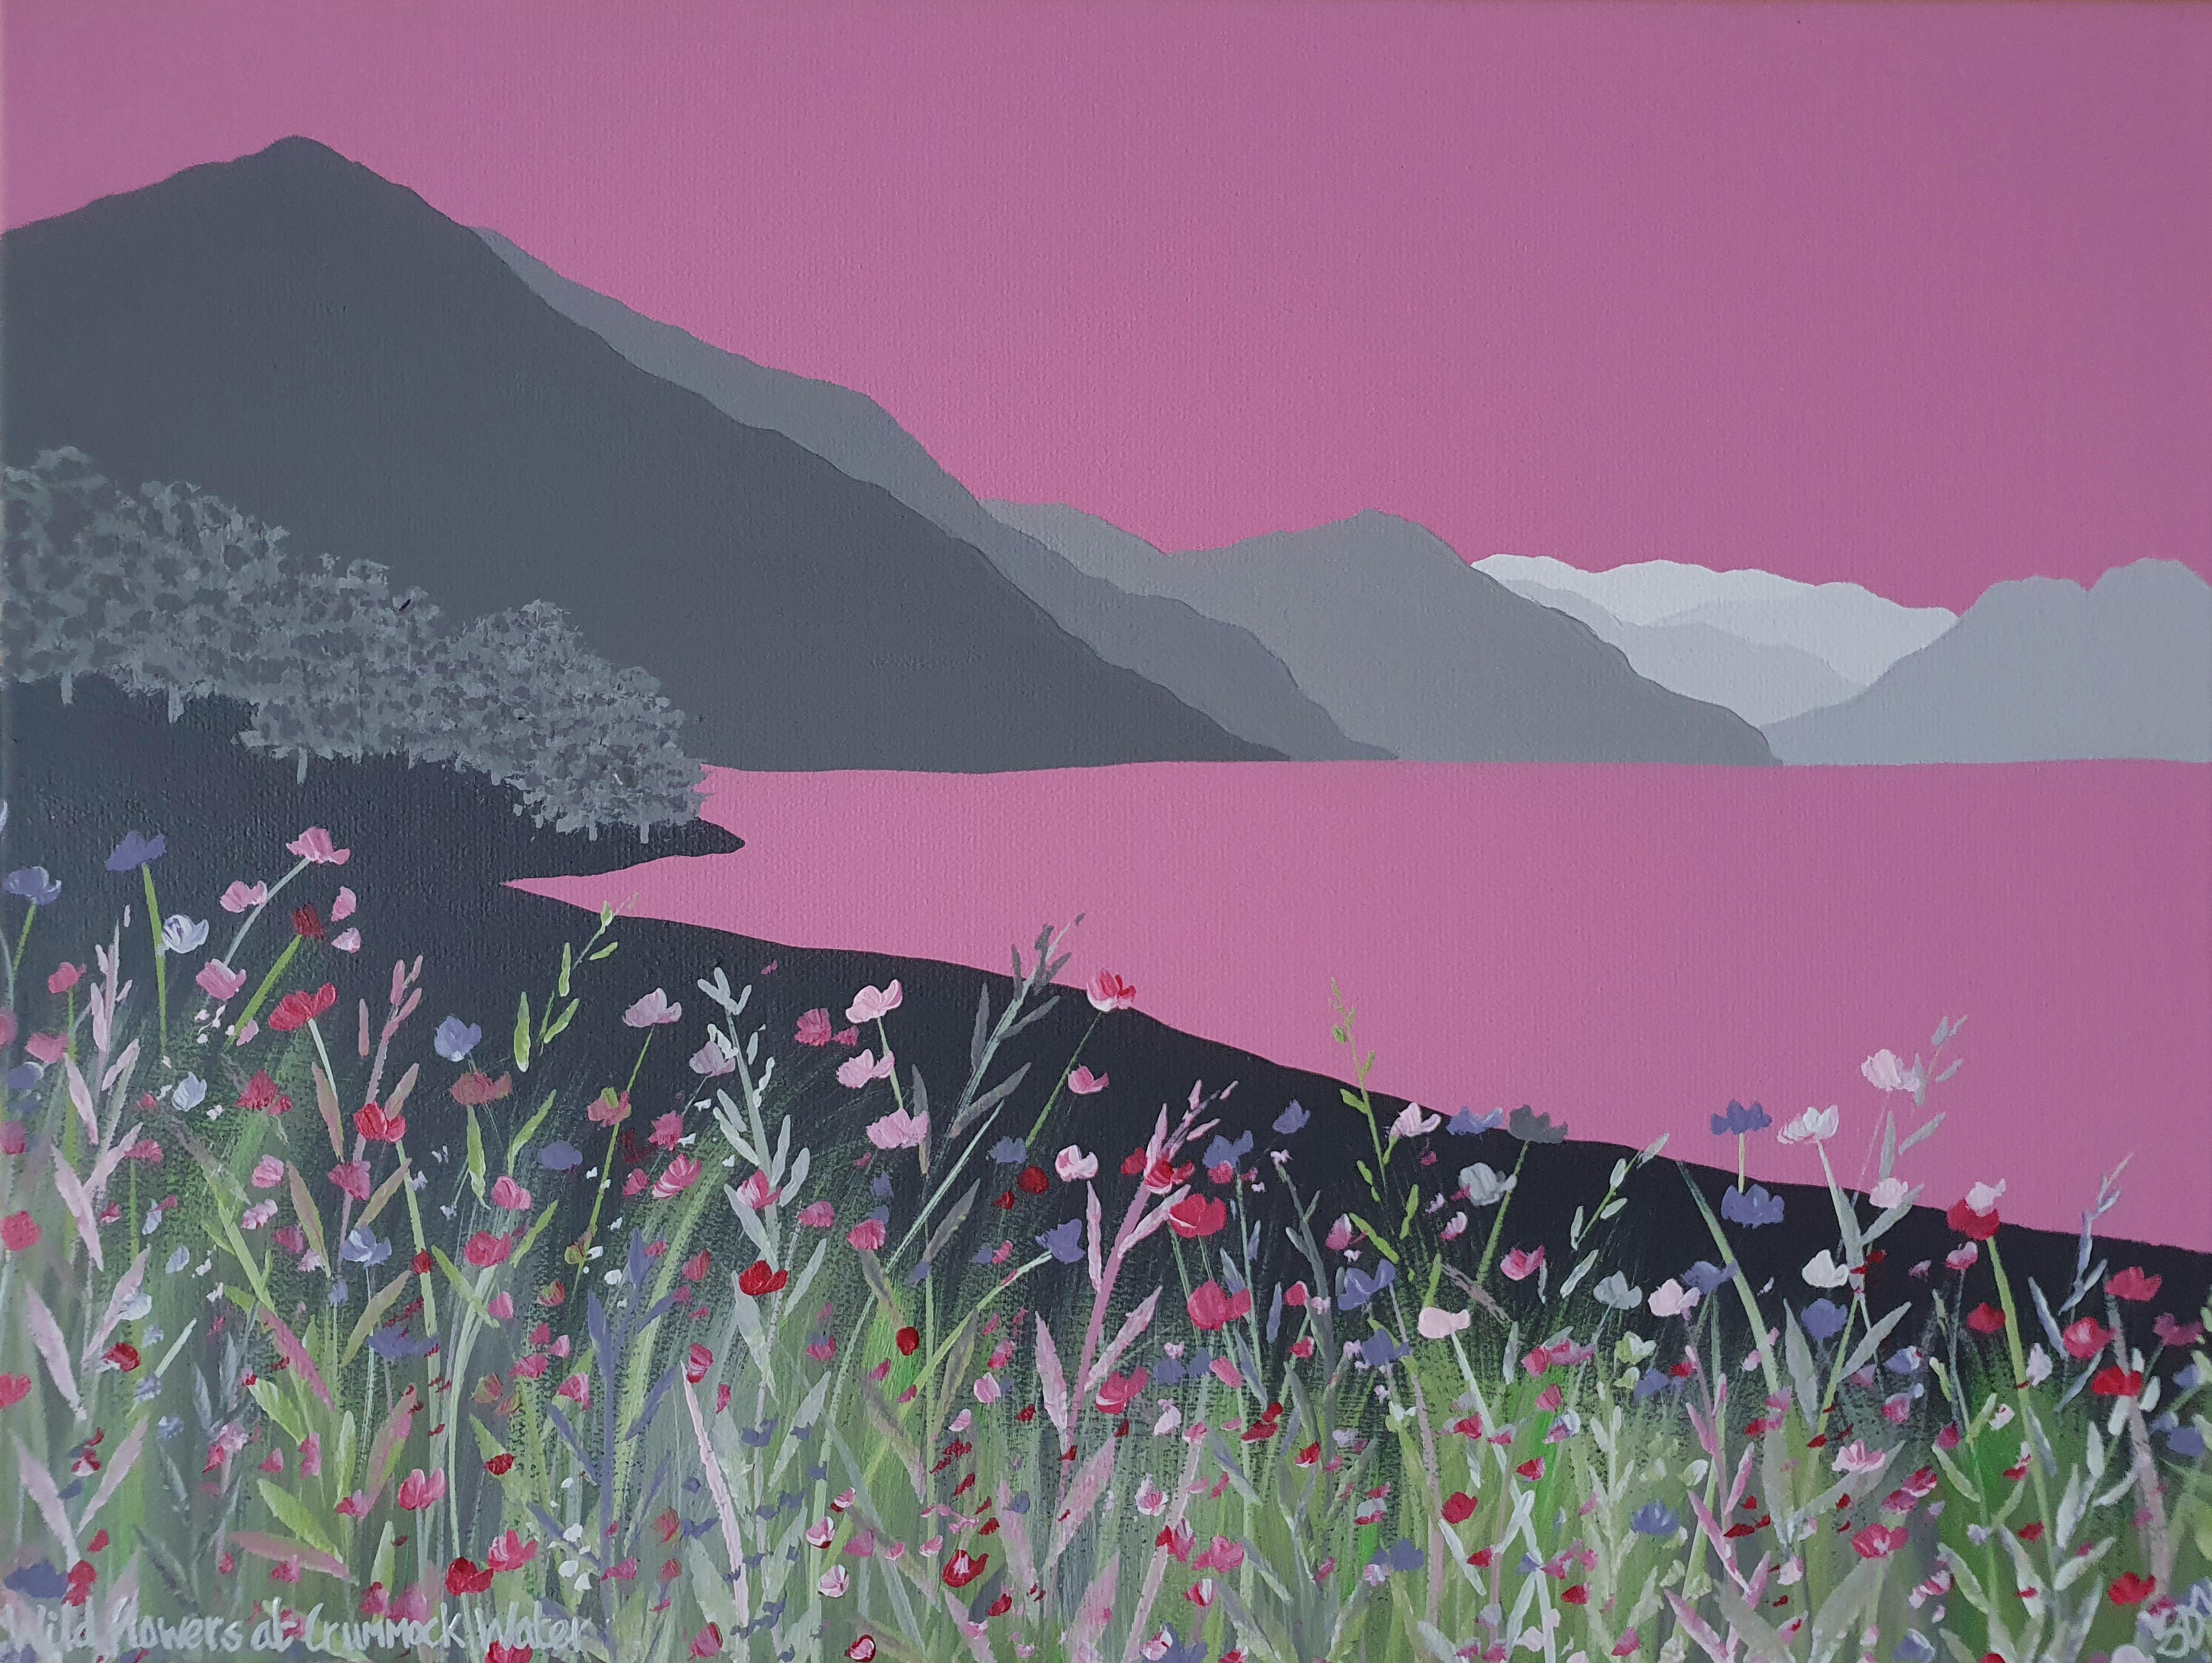 SOLD Wild flowers at Crummock Water